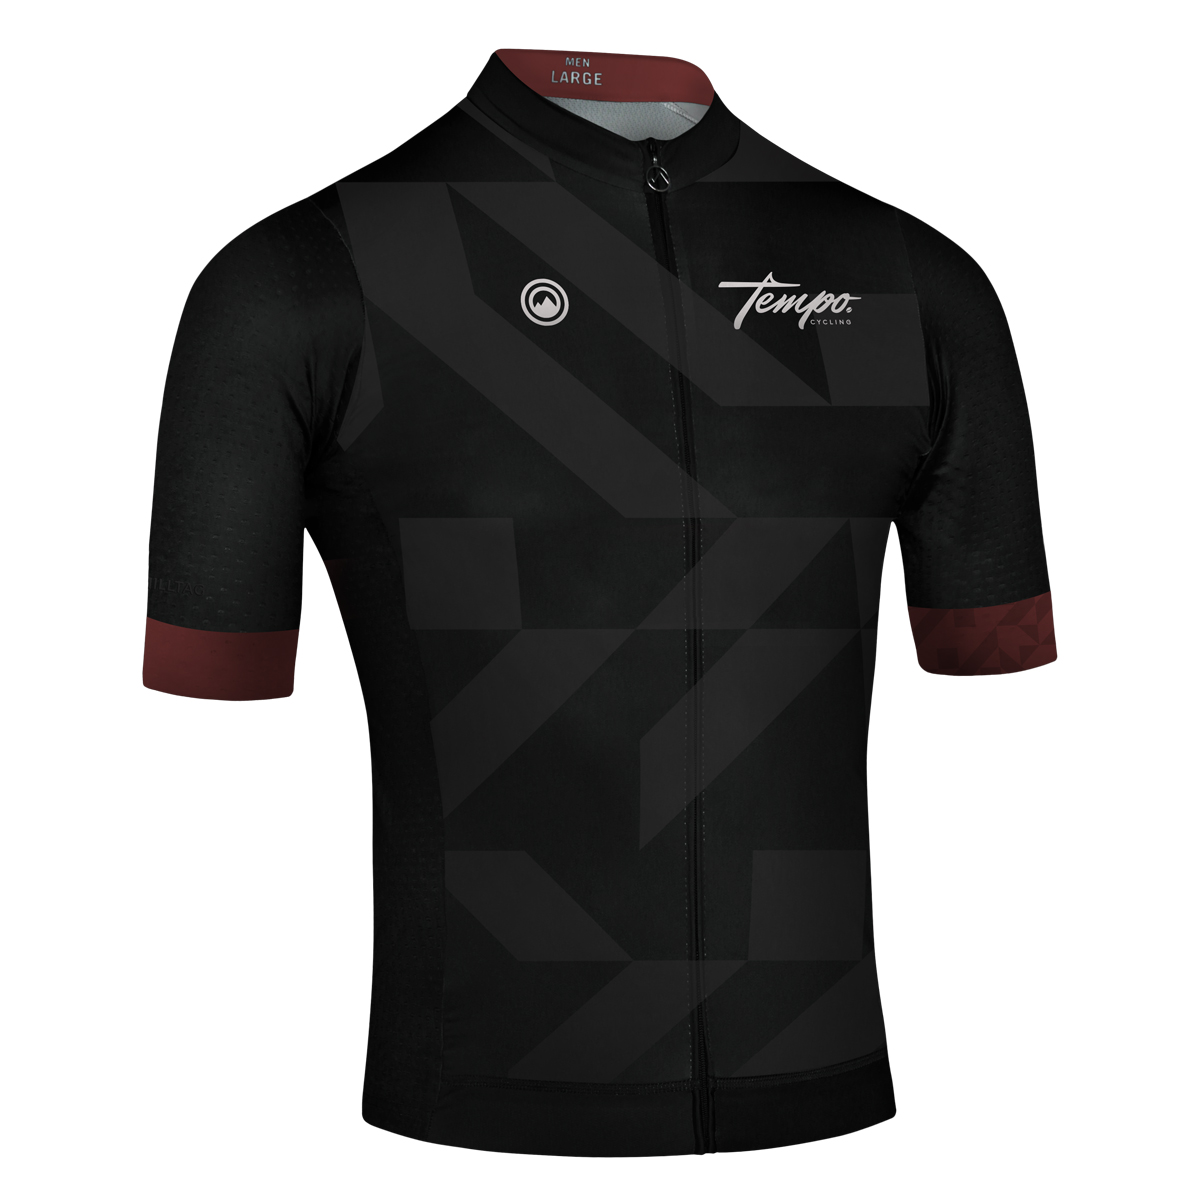 Tempo_Jersey